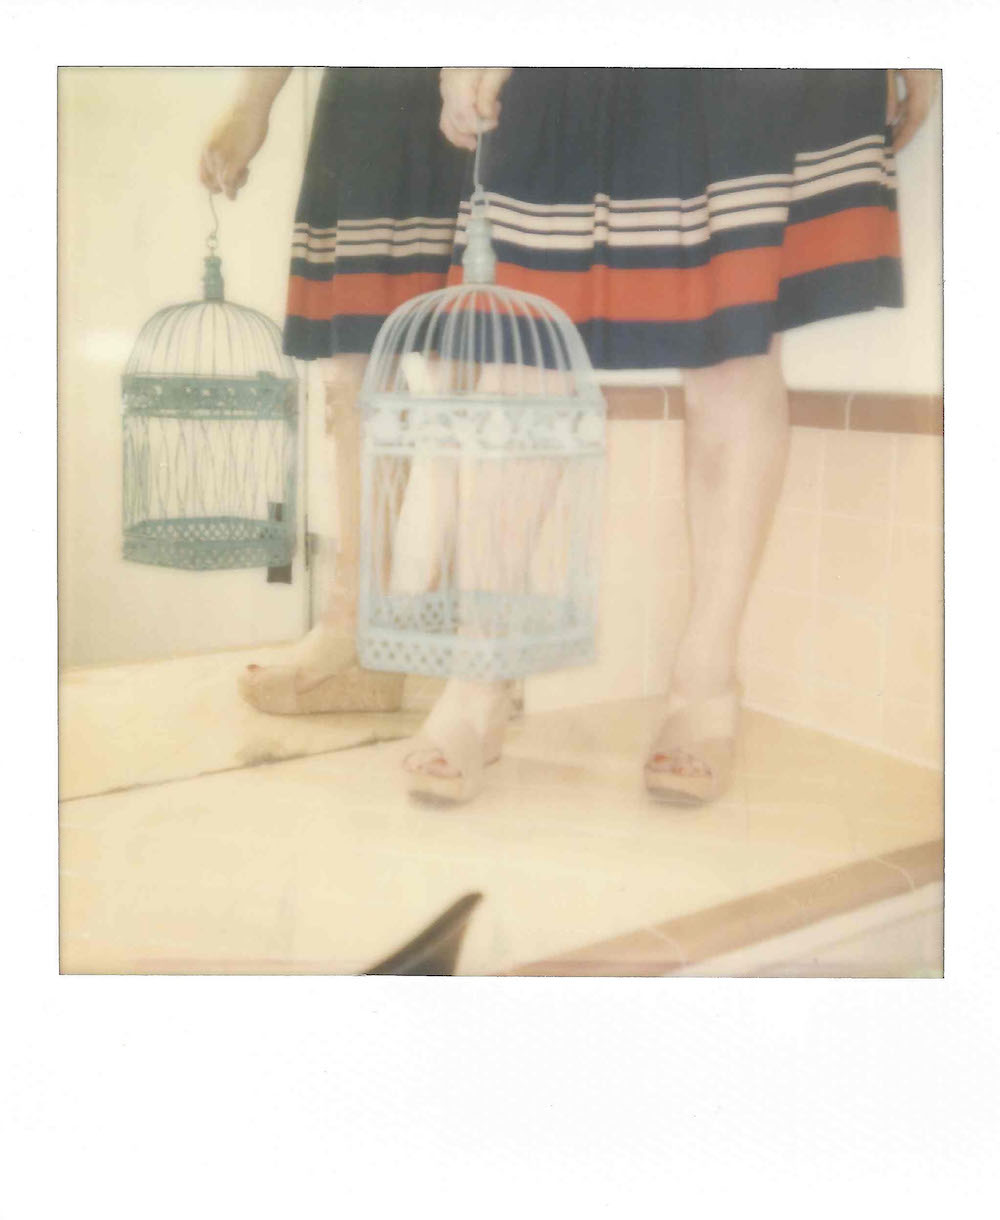 Title: Without a Bird 04 Medium: Instant Film Size: 3.5 x 4 inches